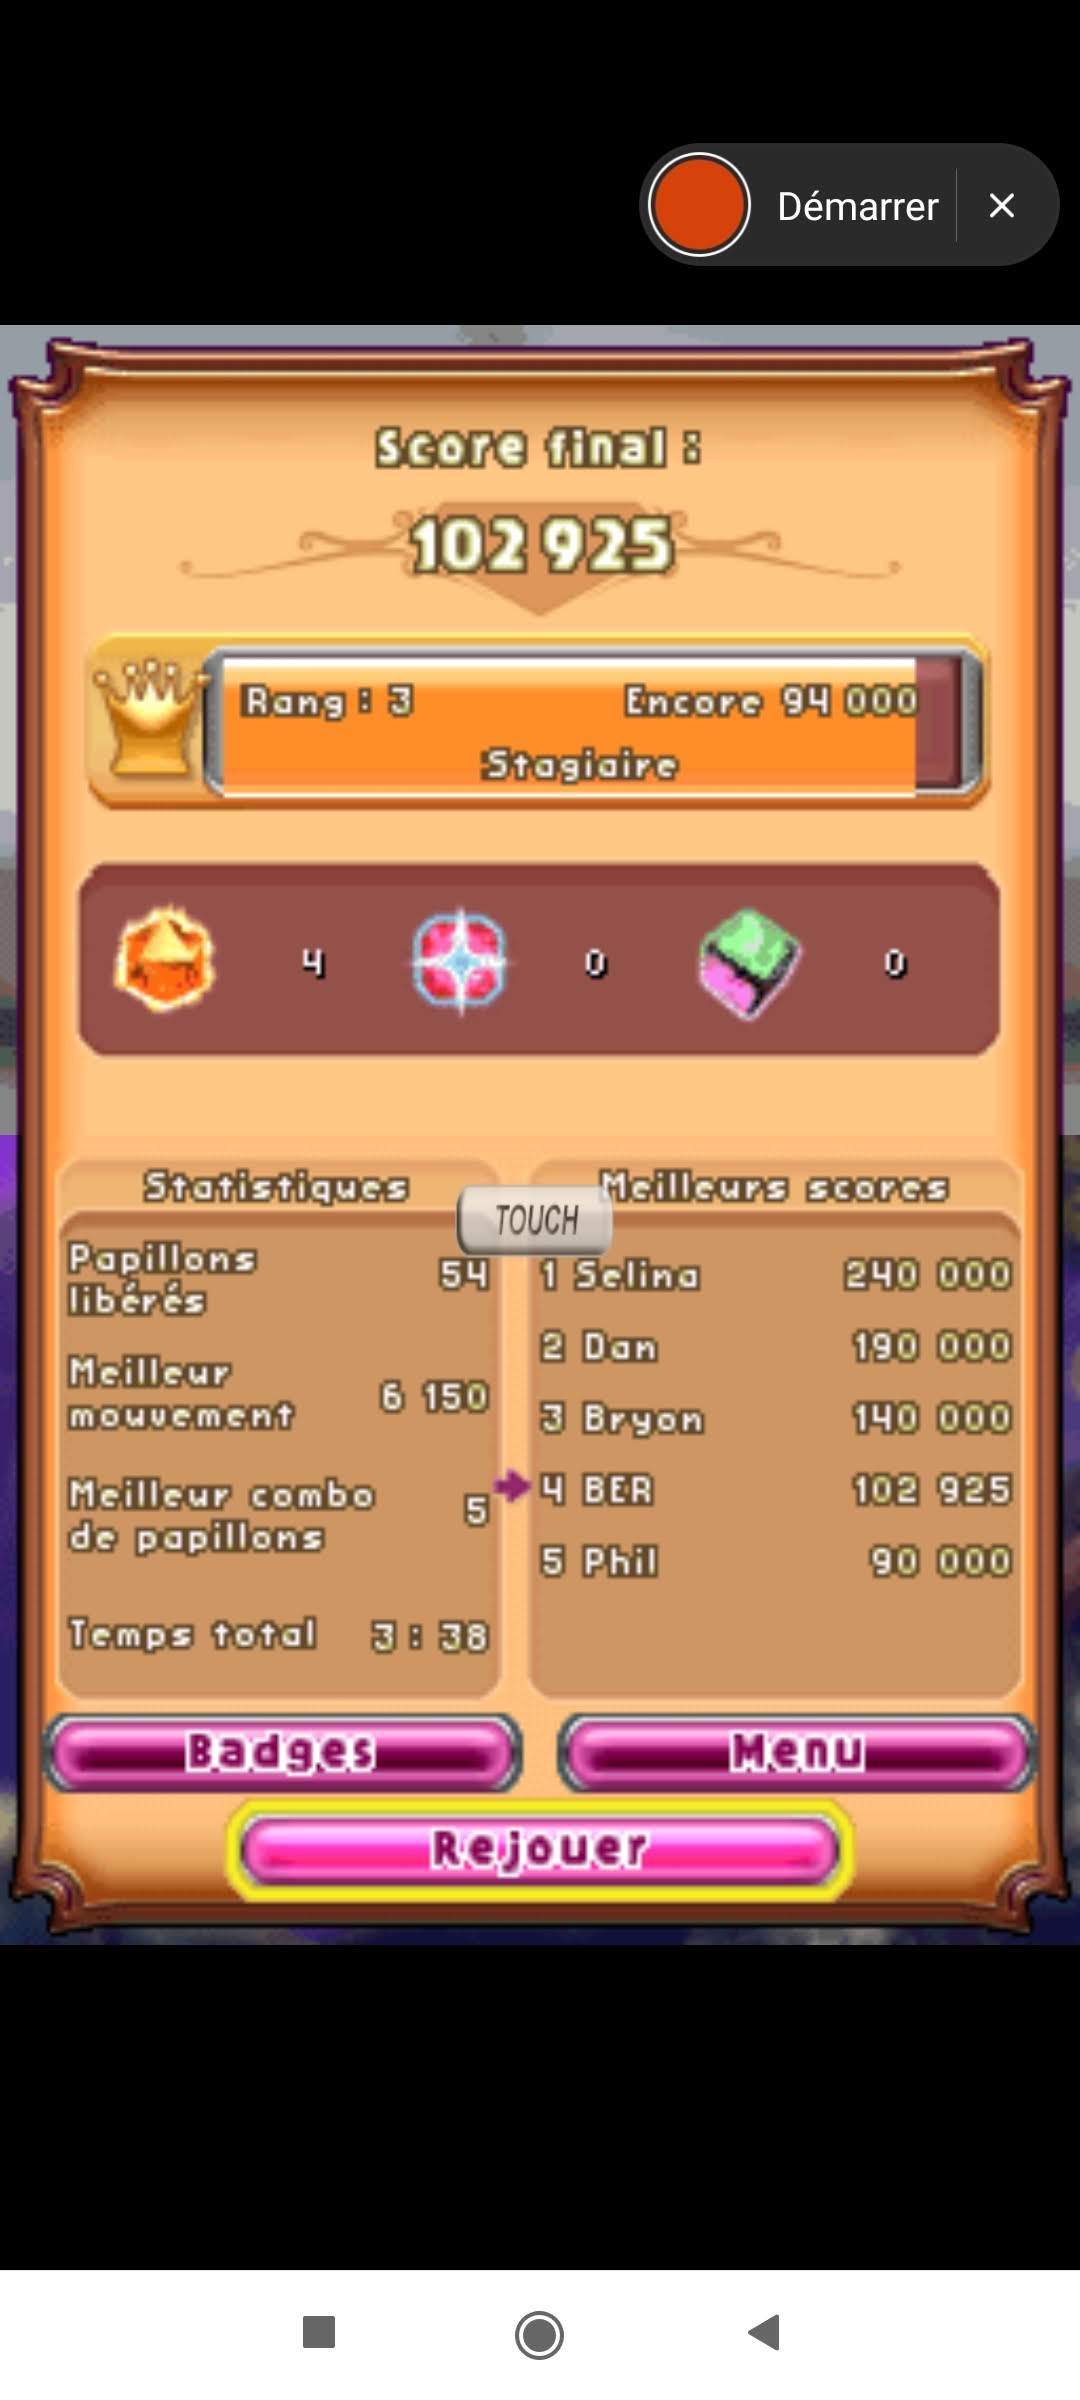 Larquey: Bejeweled 3: Butterflies [Best Butterfly Combo] (Nintendo DS Emulated) 5 points on 2020-09-27 04:25:35